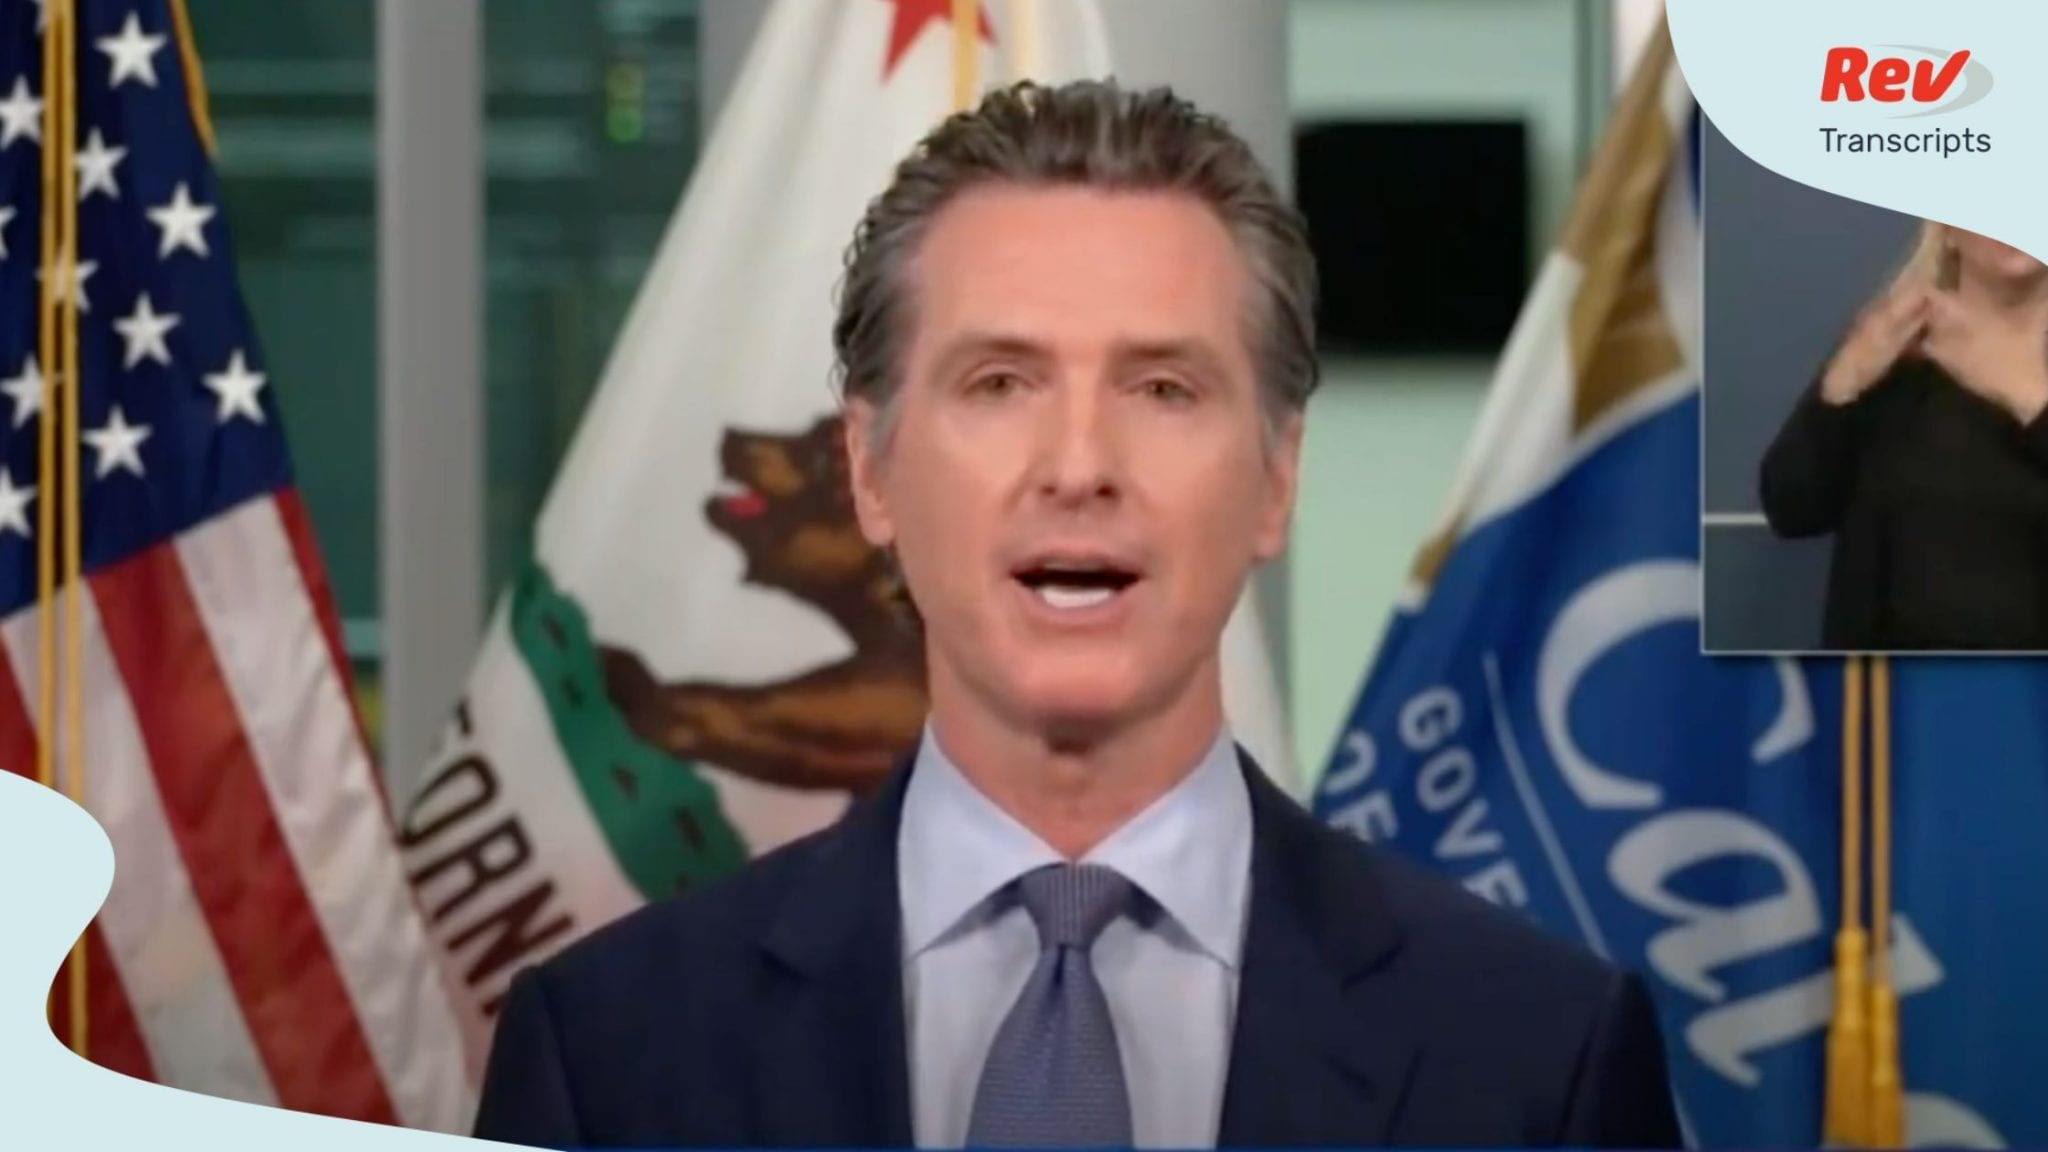 Governor Newsom gave a COVID-19 update on July 20